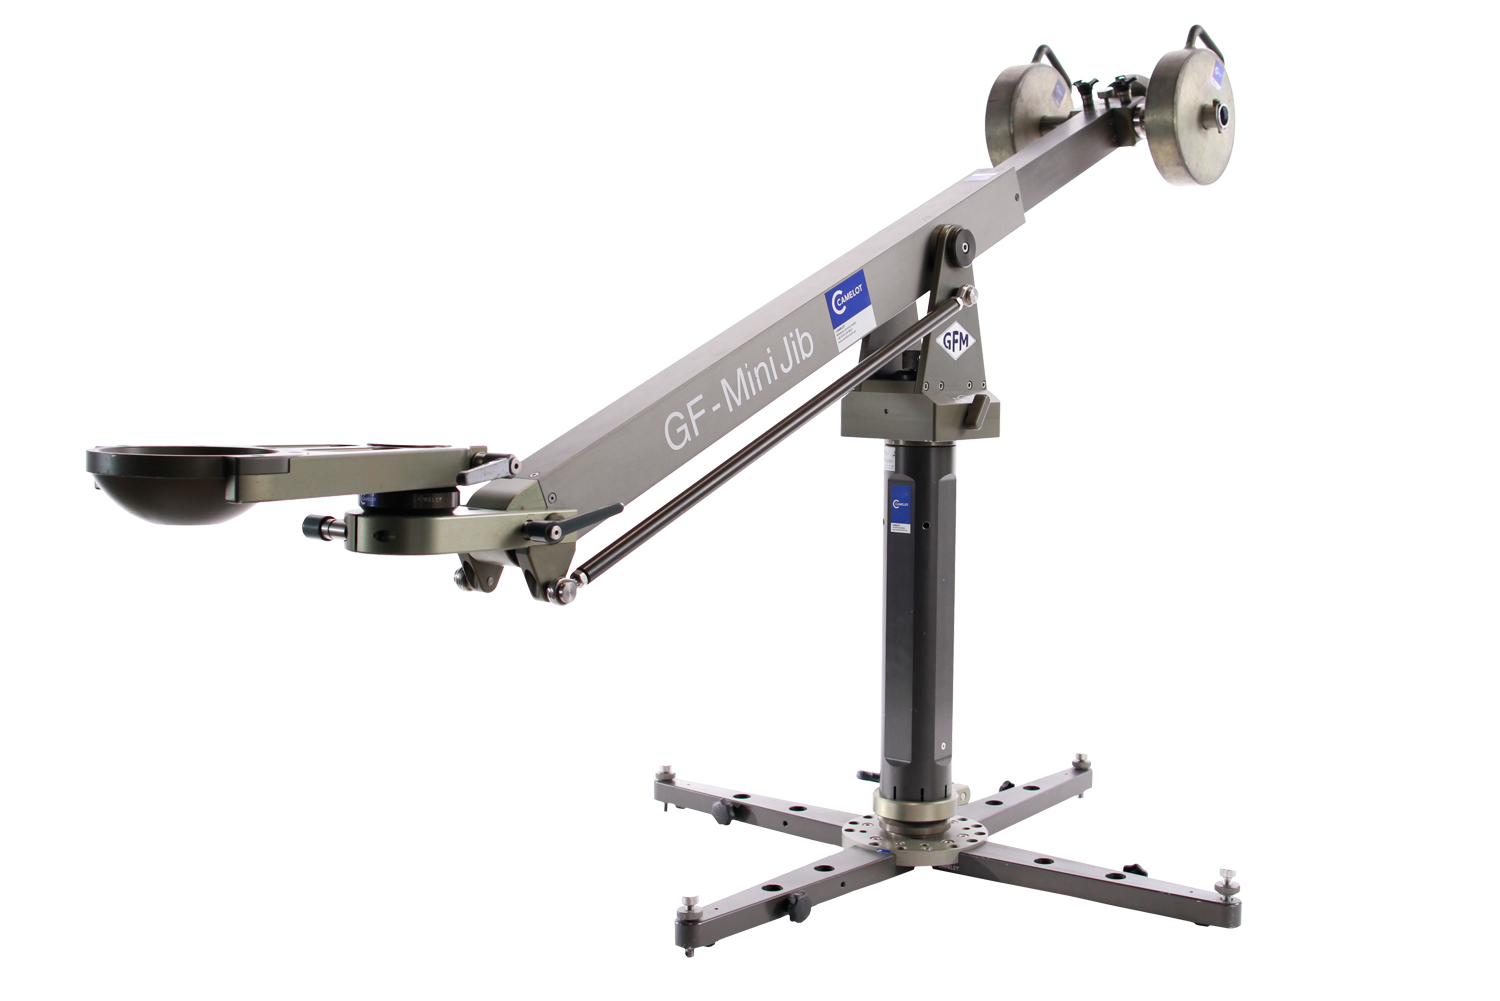 gfm-mini-jib-arm-1